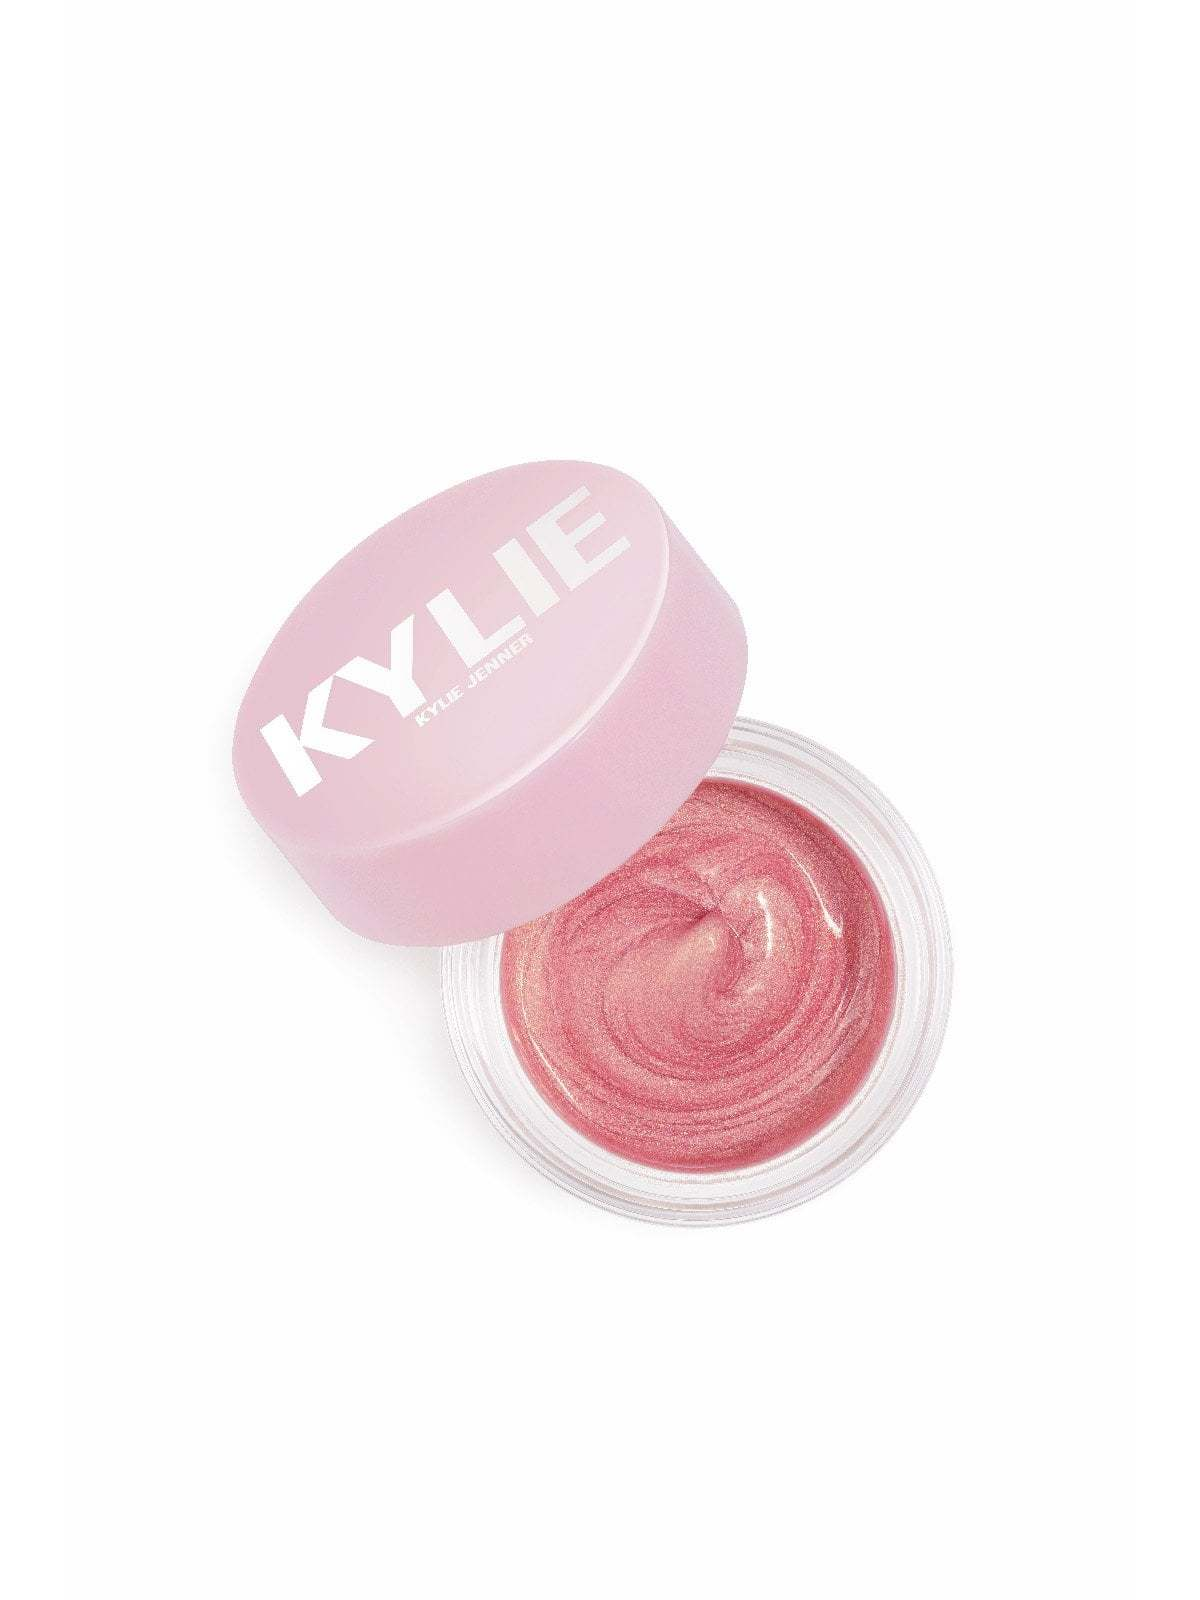 KYLIE COSMETICS Jelly Kylighter Pink Paper